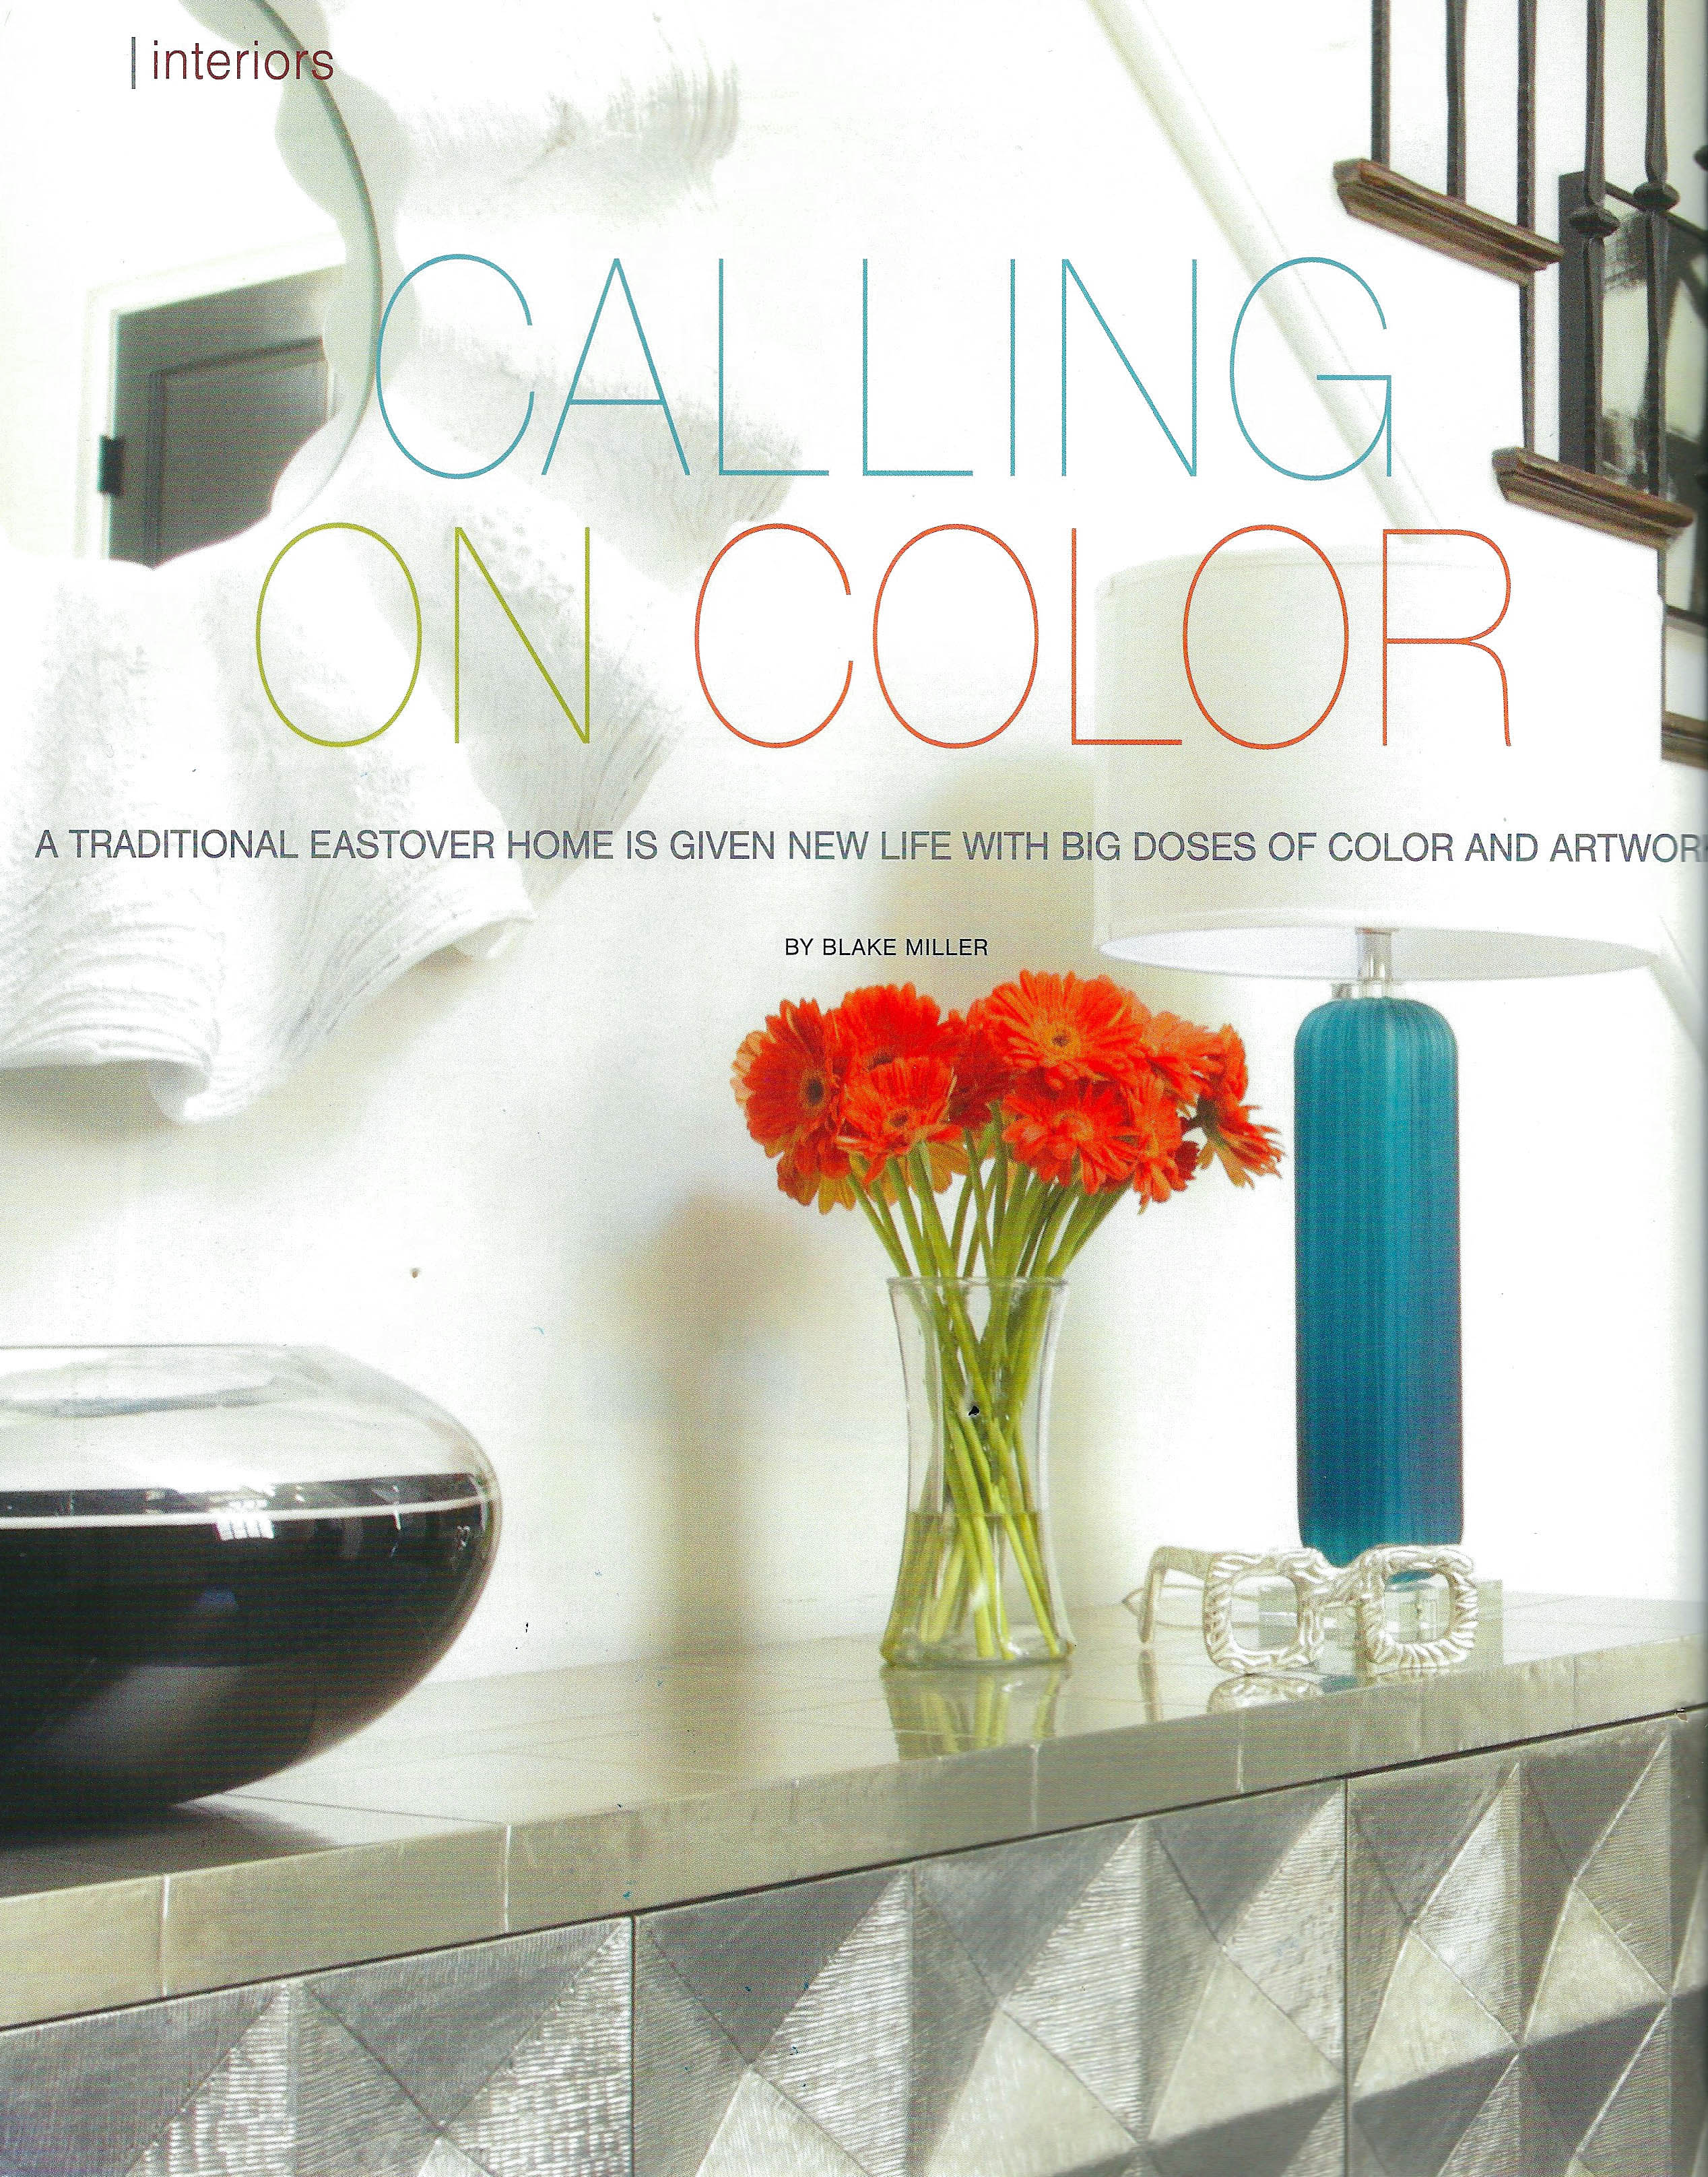 Calling on color SouthPark Magazine